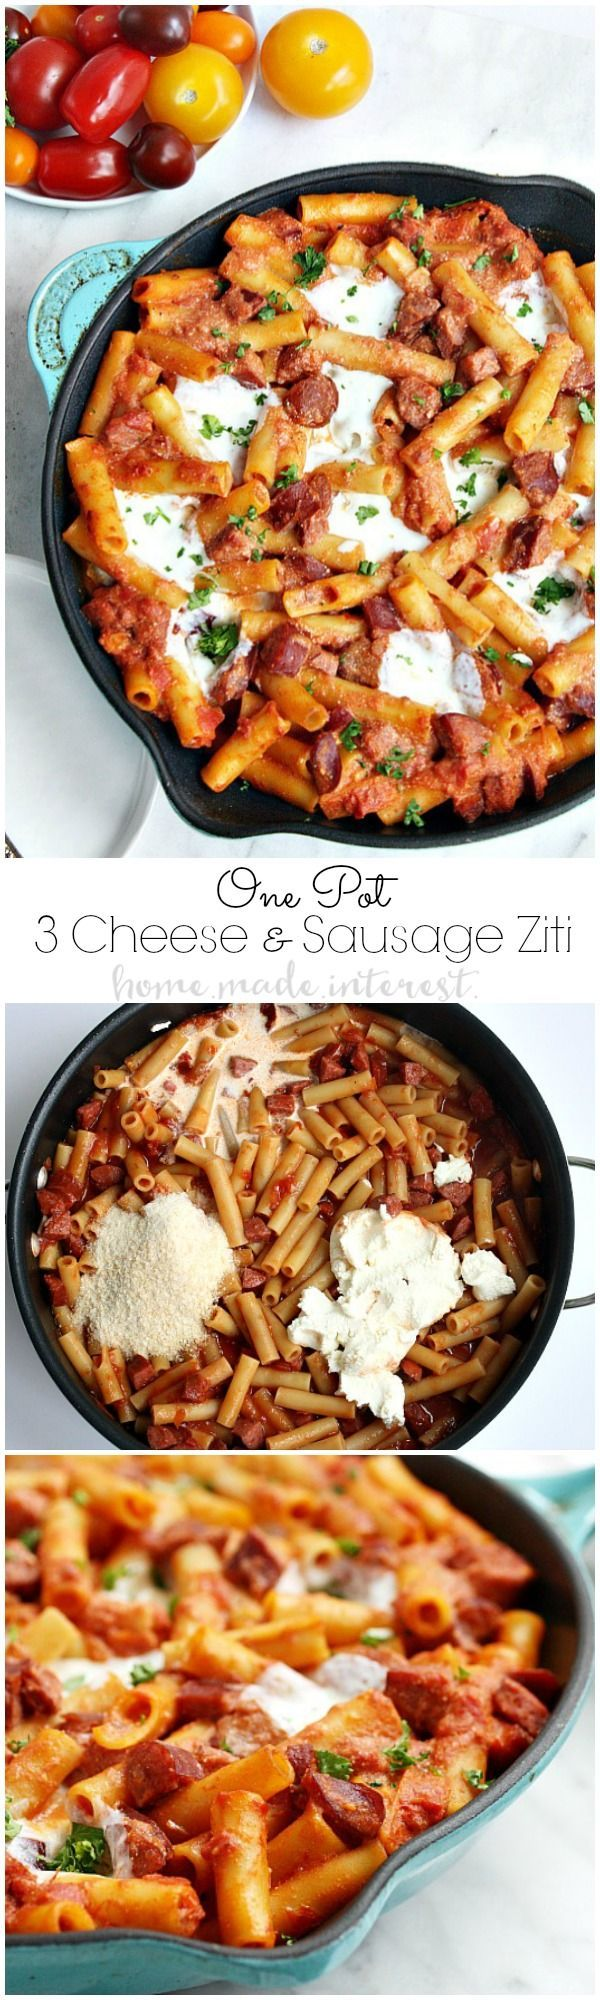 Parmesan, Mozzarella, Riccotta cheese, and sausage in a creamy tomato sauce cooked with ziti noodles. This one pot recipe makes an easy weeknight meal for the whole family. Everyone loves baked ziti and this simple one pot baked ziti recipe doesn't disappoint! #DeliciousDinners #ad